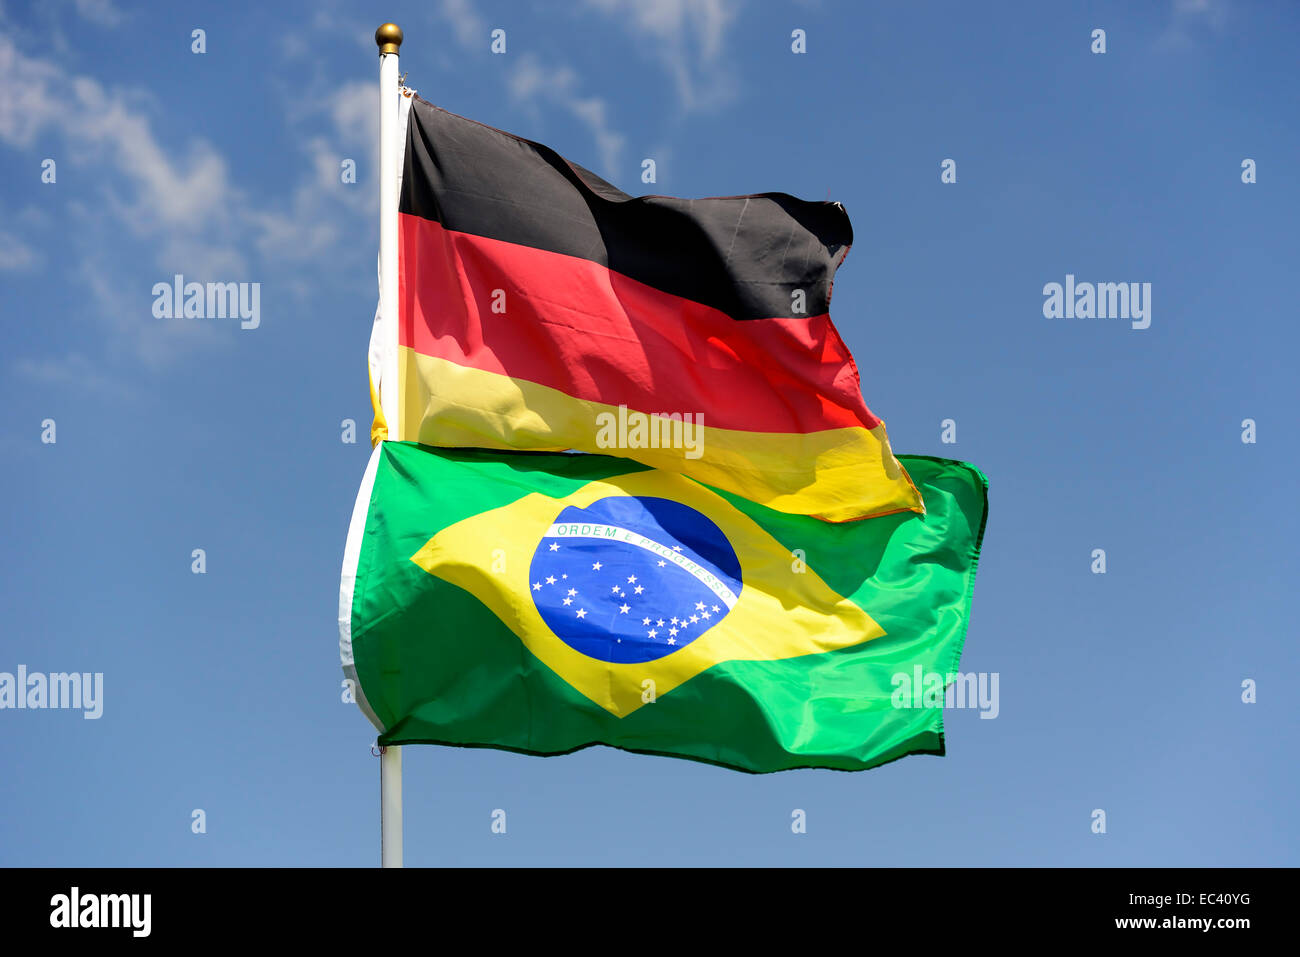 Flags of Germany and Brazil, World Cup 2014 - Stock Image